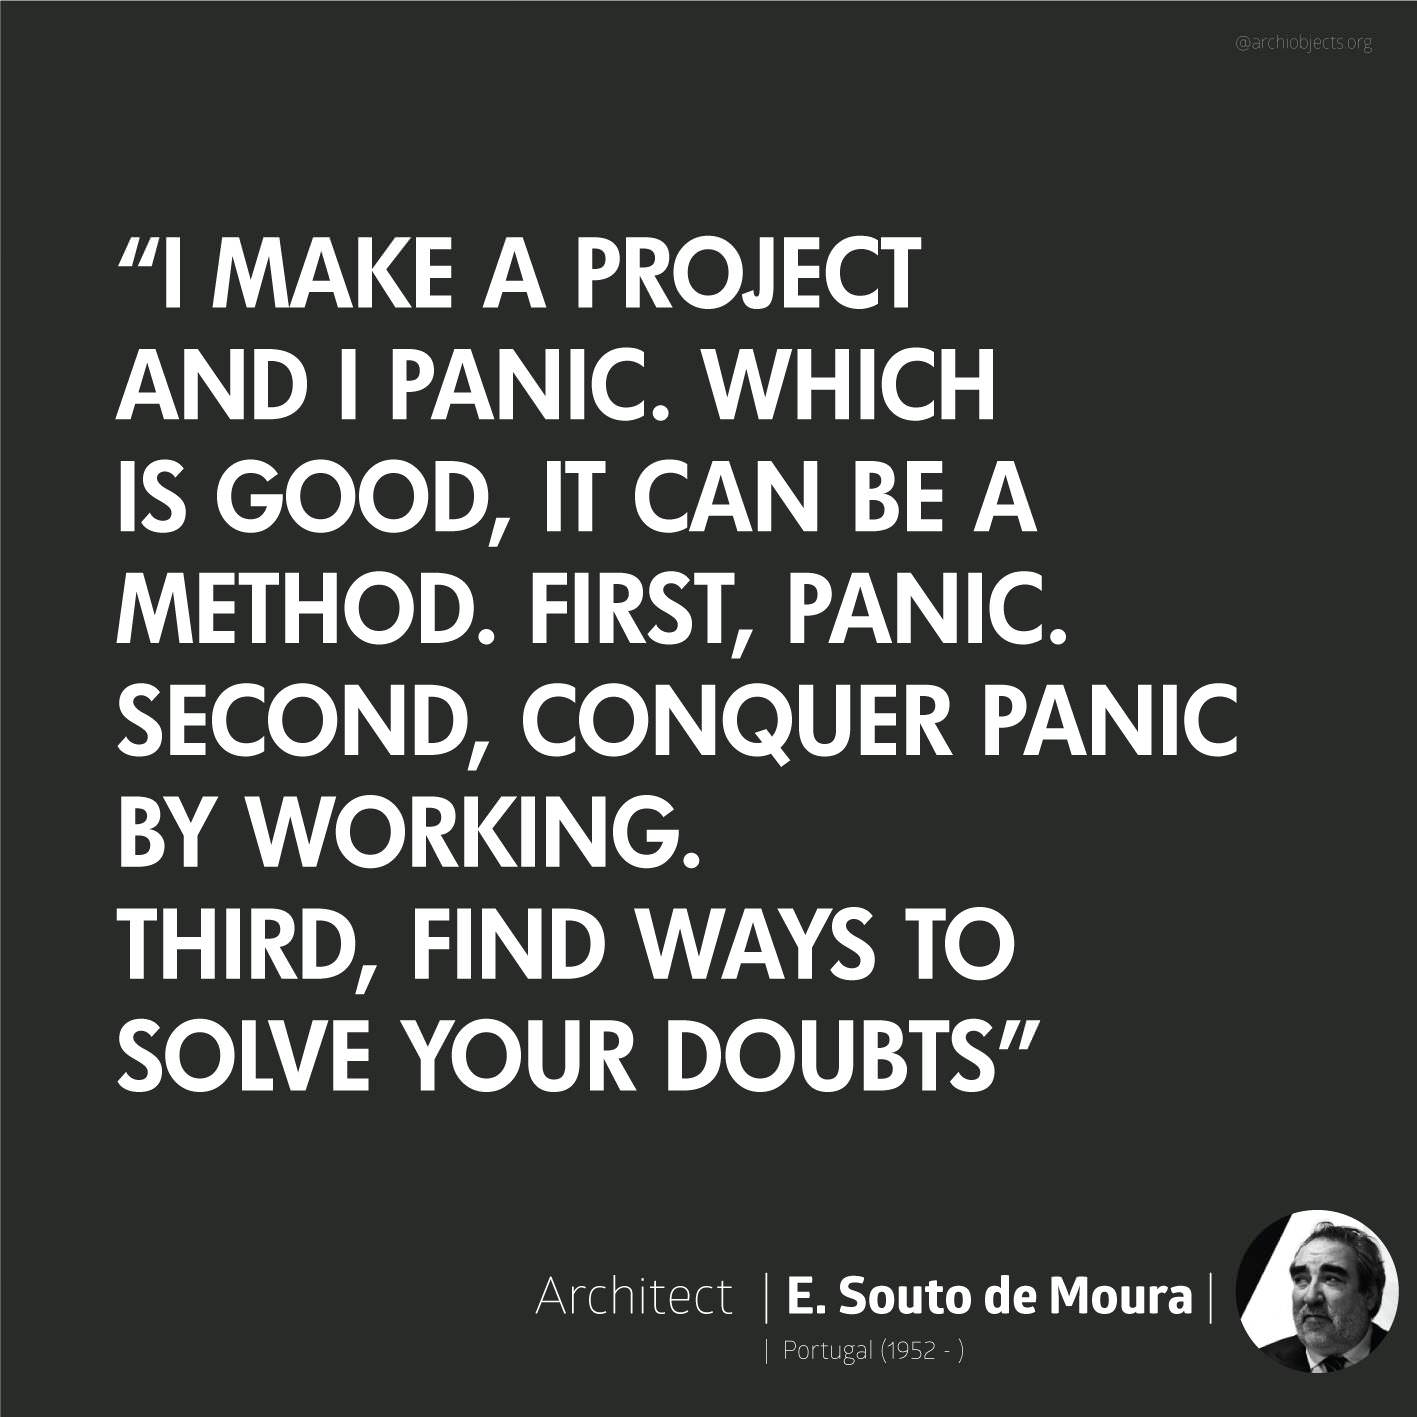 souto de moura Architectural Quotes - Worth spreading Architects' voice